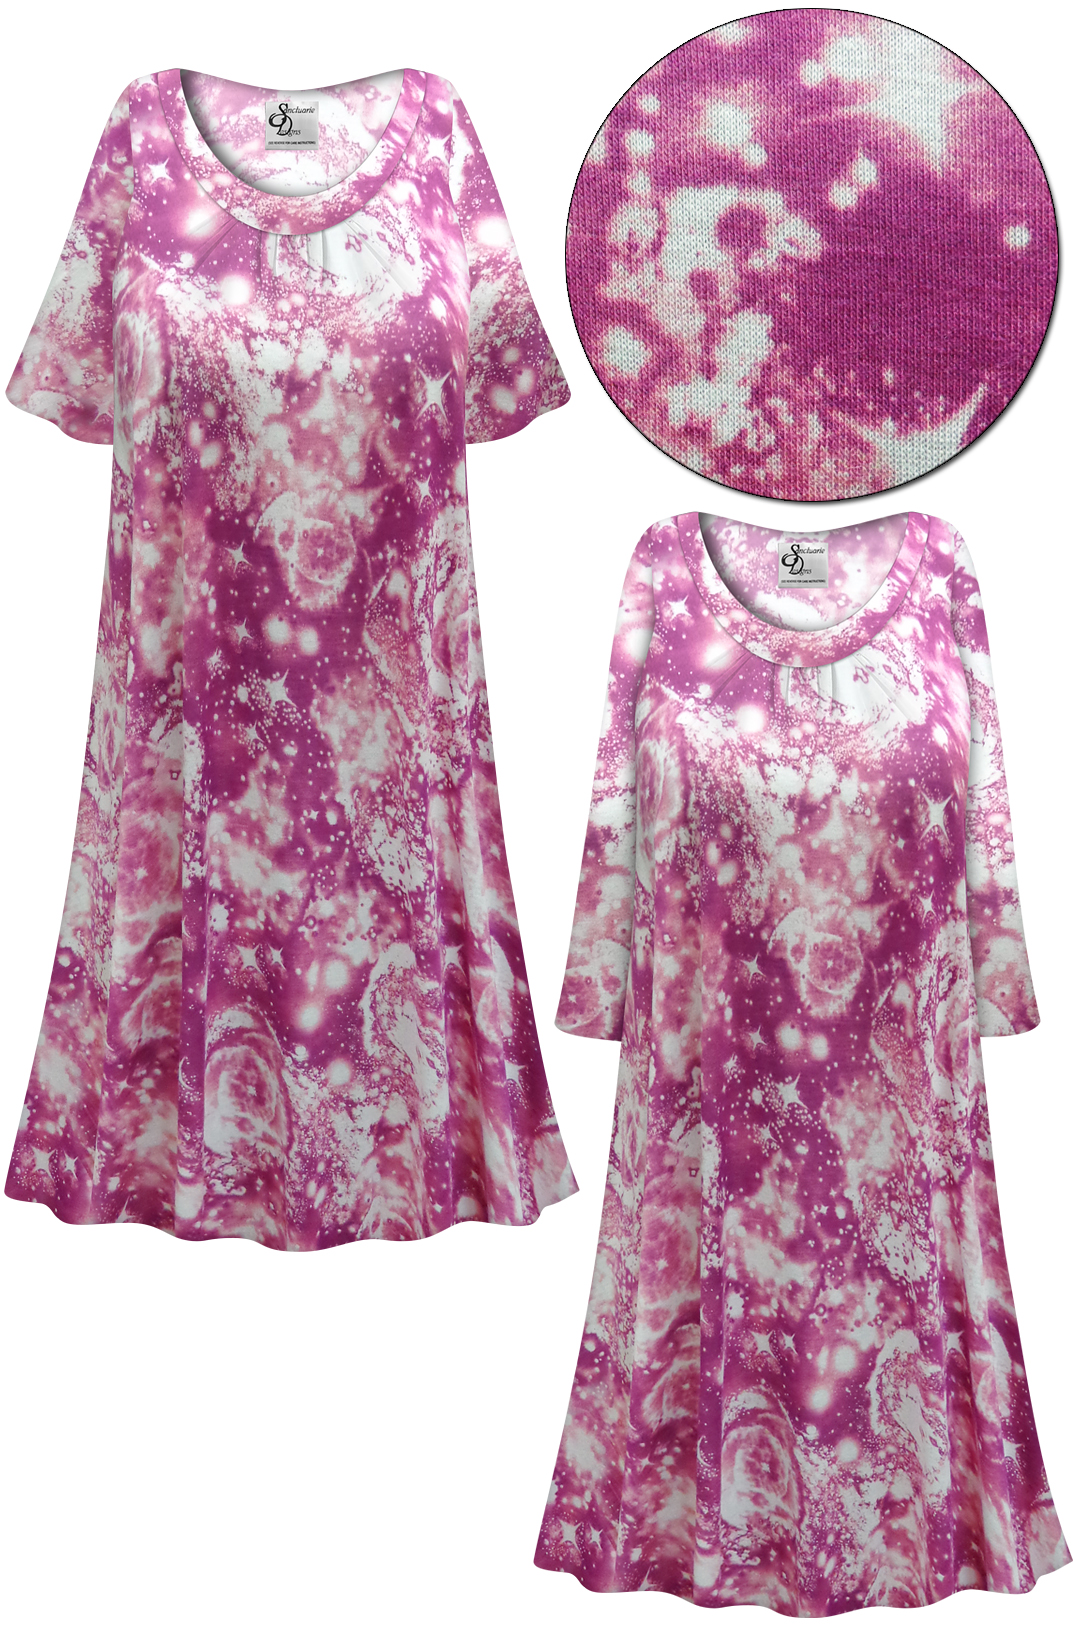 SOLD OUT! SALE! Customizable Plus Size Purple Galaxy Print ...